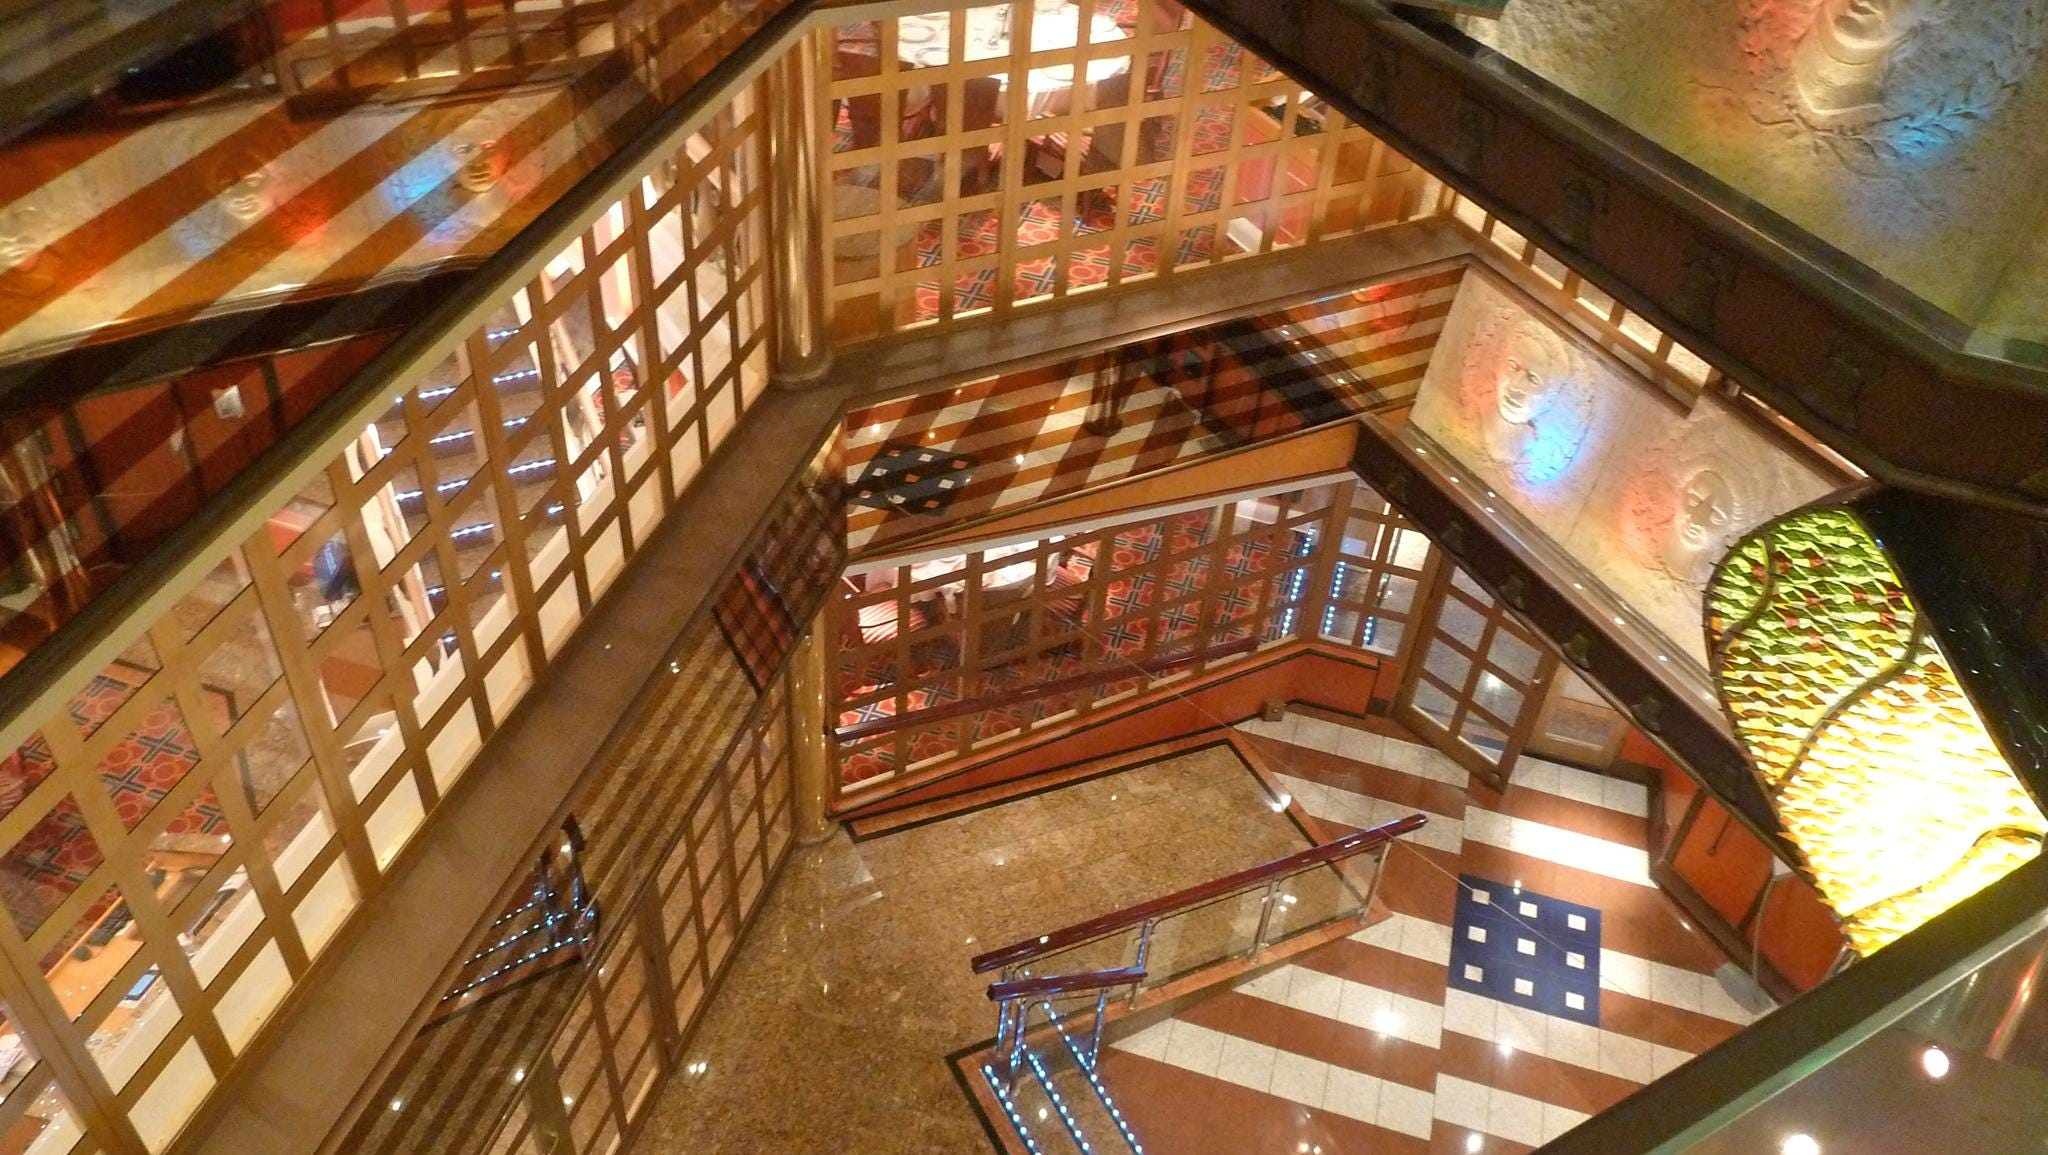 The Glory Atrium is located near the aft stairtower and spans down from Deck 5 to Deck 3. Bas-reliefs of American heroes line its flanks, bathed in red, white and blue lighting.